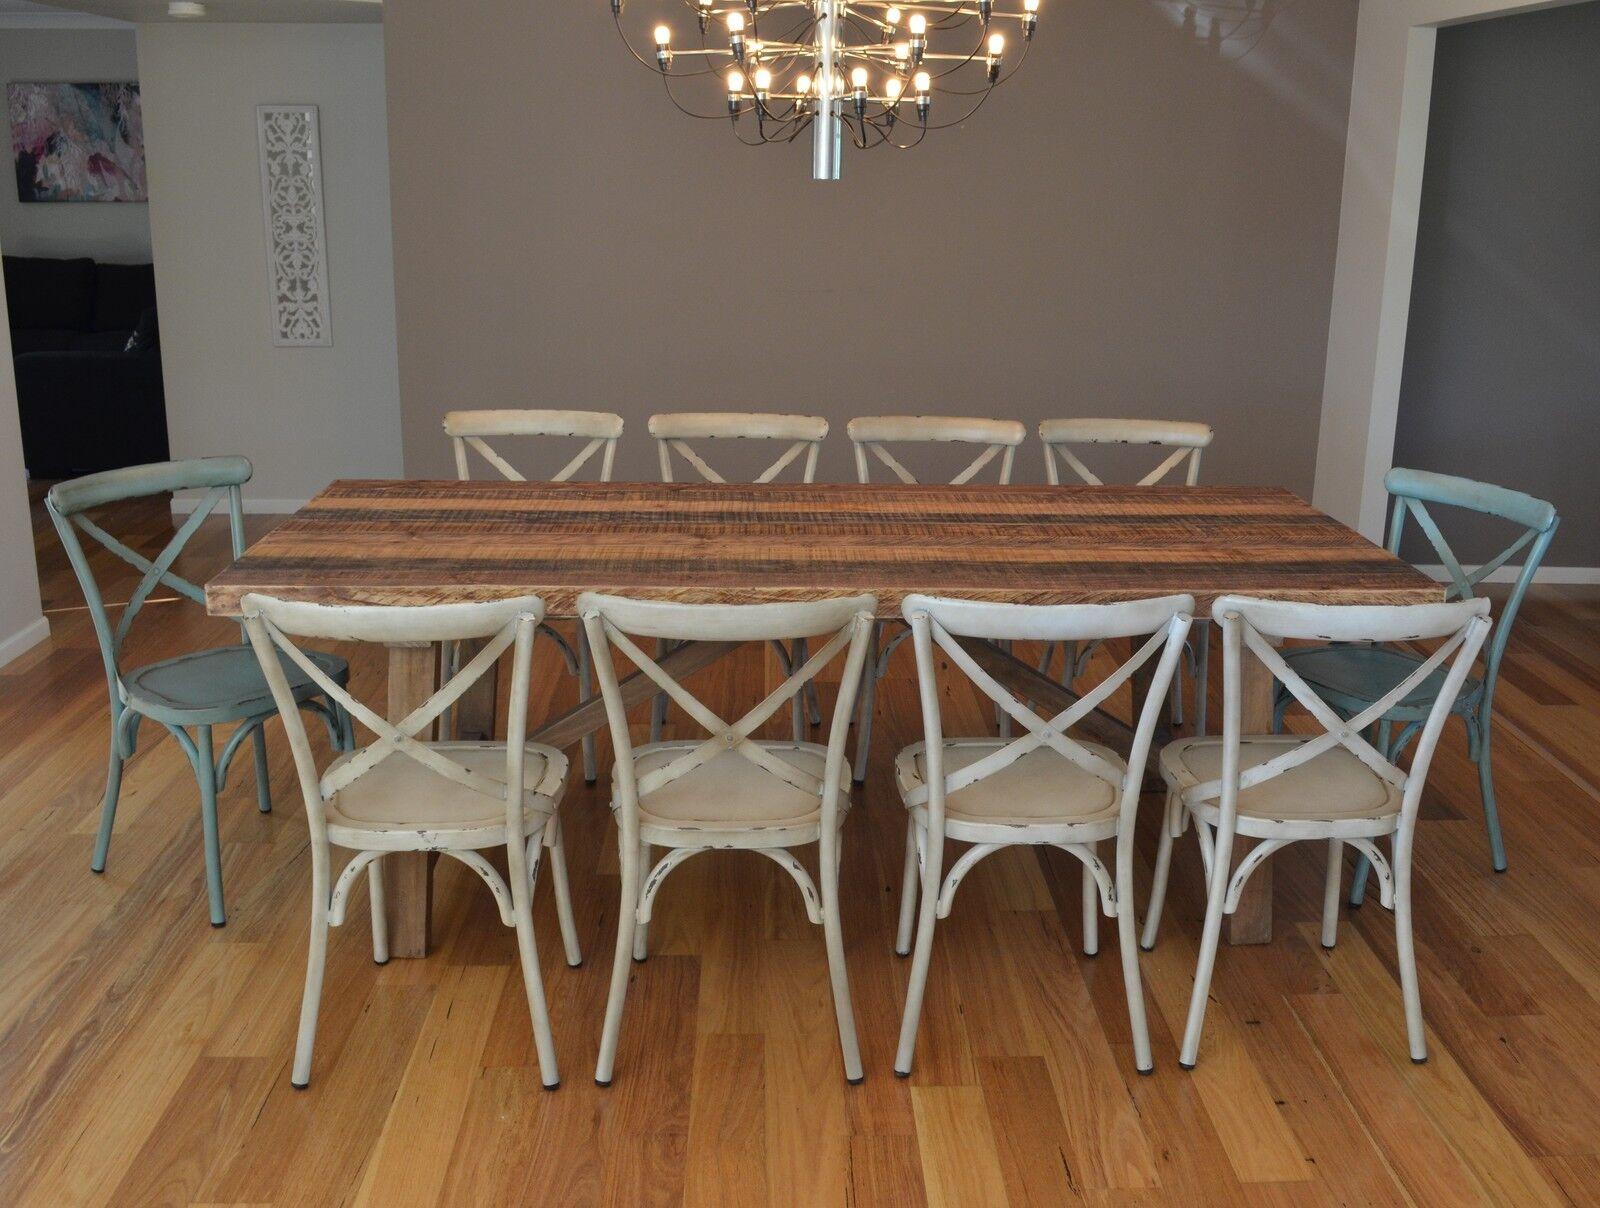 10 seater recycled timber dining table setting rustic metal chairs set